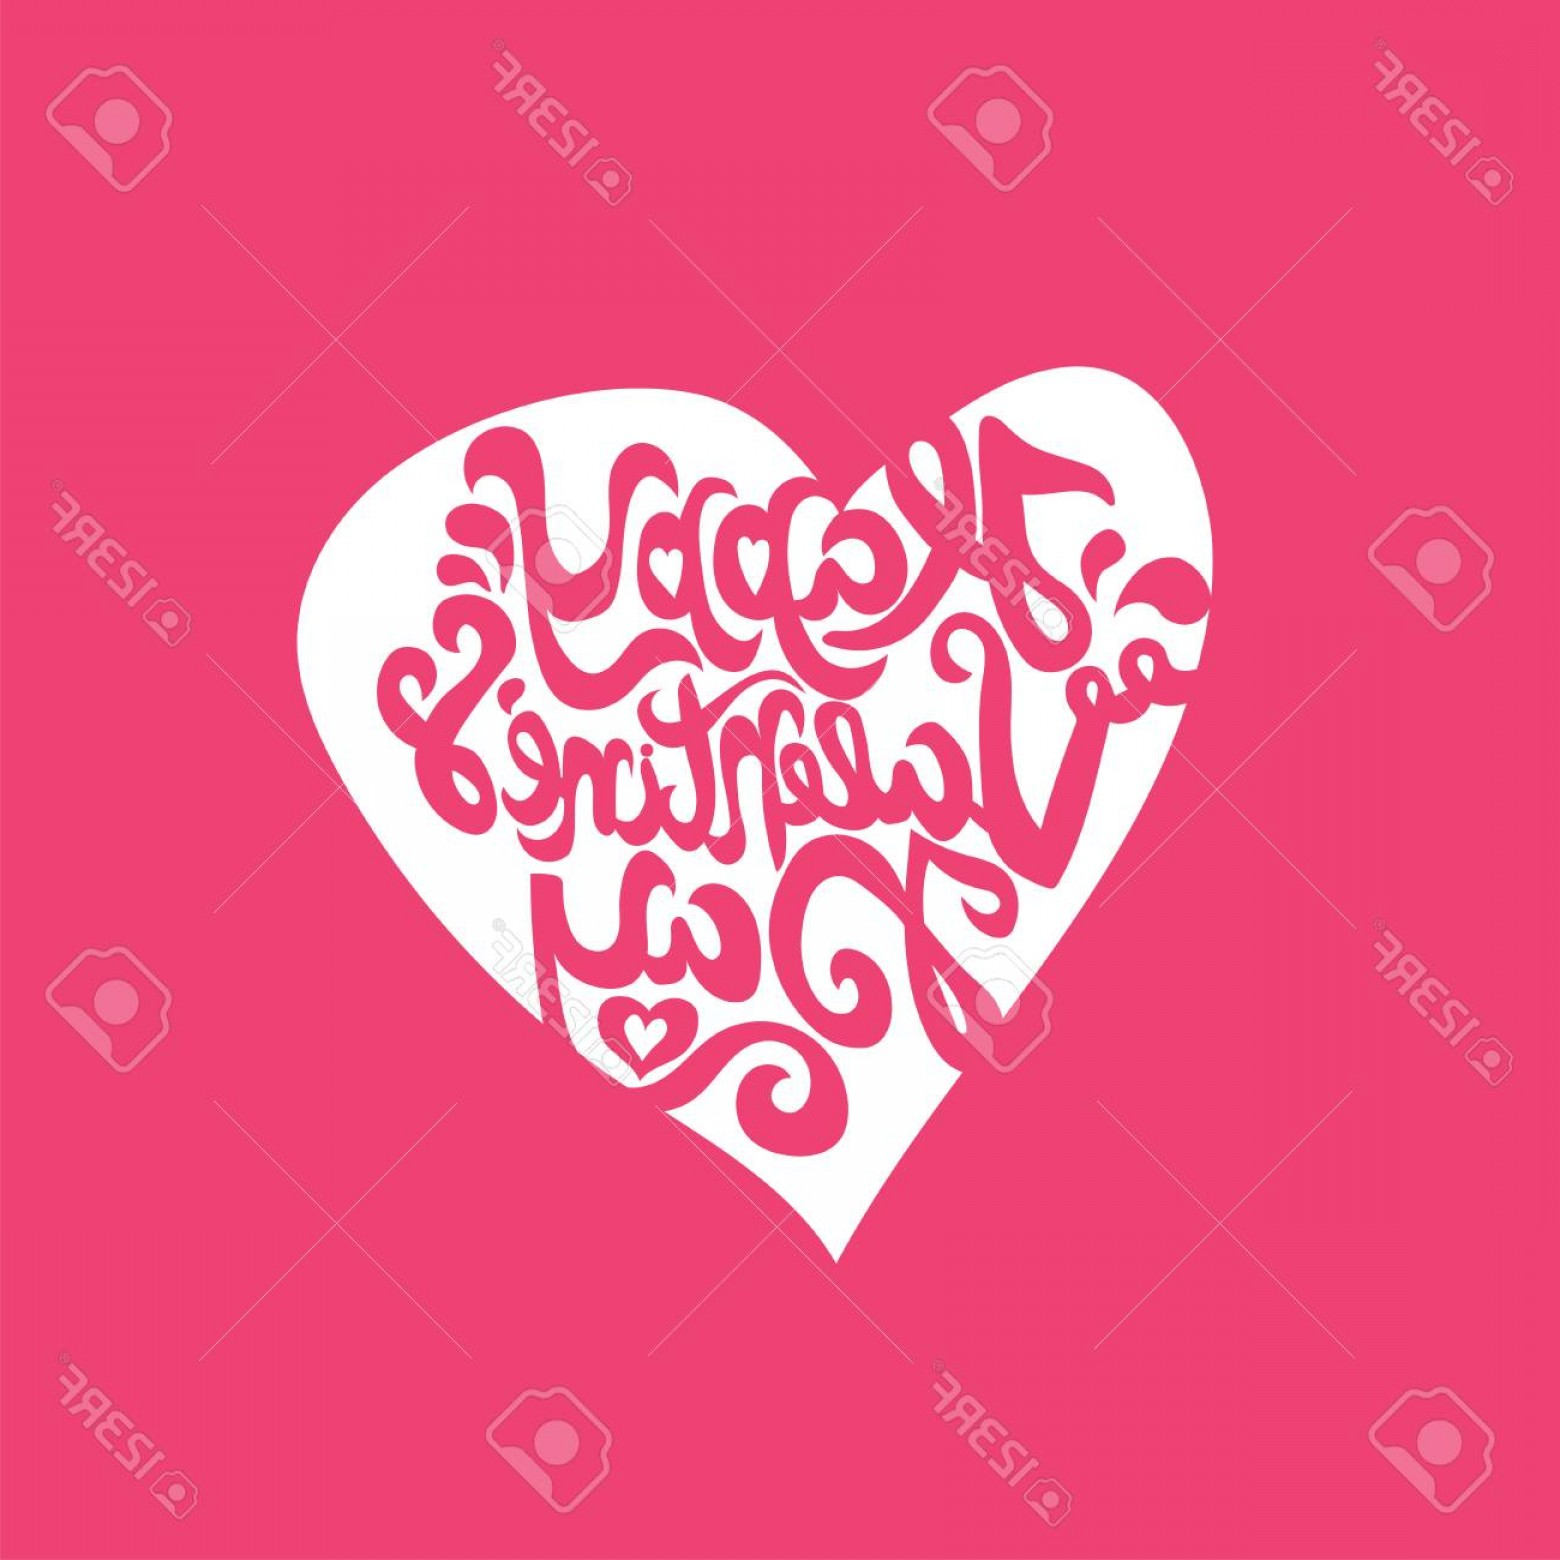 1560x1560 Script Heart Vectors Lazttweet